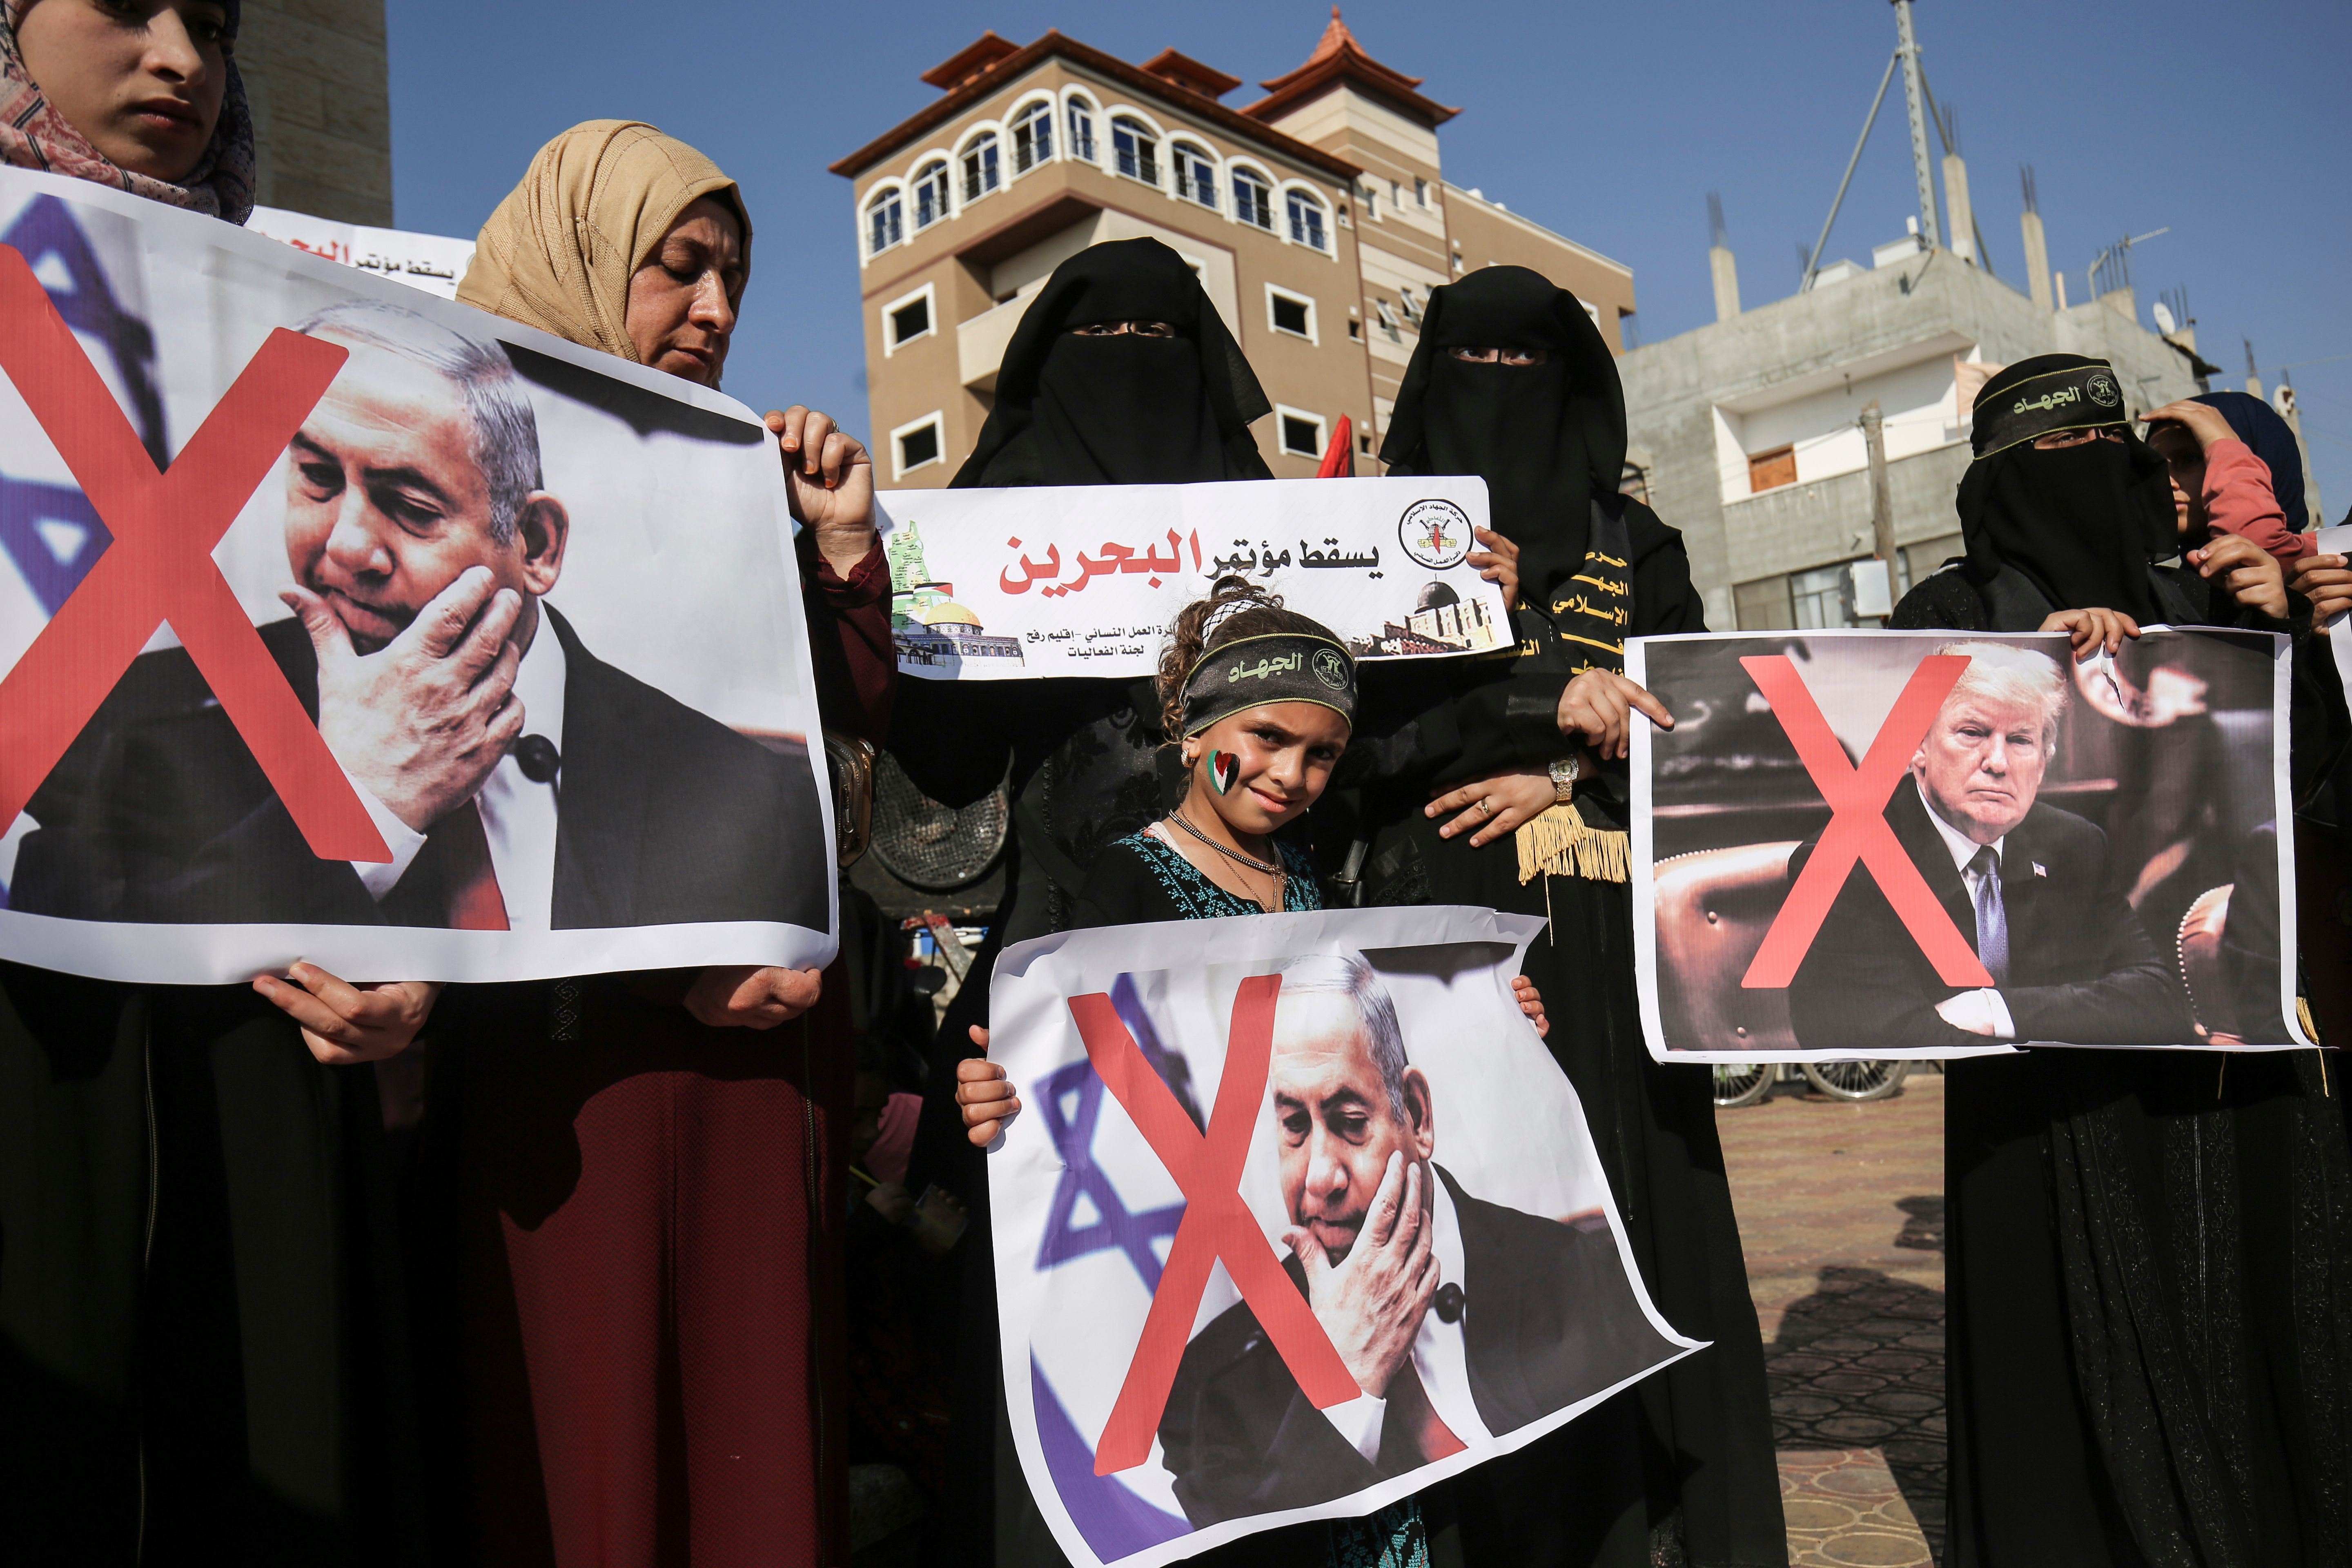 Palestinian female supporters of the Islamic Jihad carry posters of US President Donald Trump and Israeli Prime Minister Benjamin Netanyahu during a protest against the Bahrain economic workshop in the southern Gaza Strip town of Rafah on June 18, 2019. (SAID KHATIB/AFP/Getty Images)